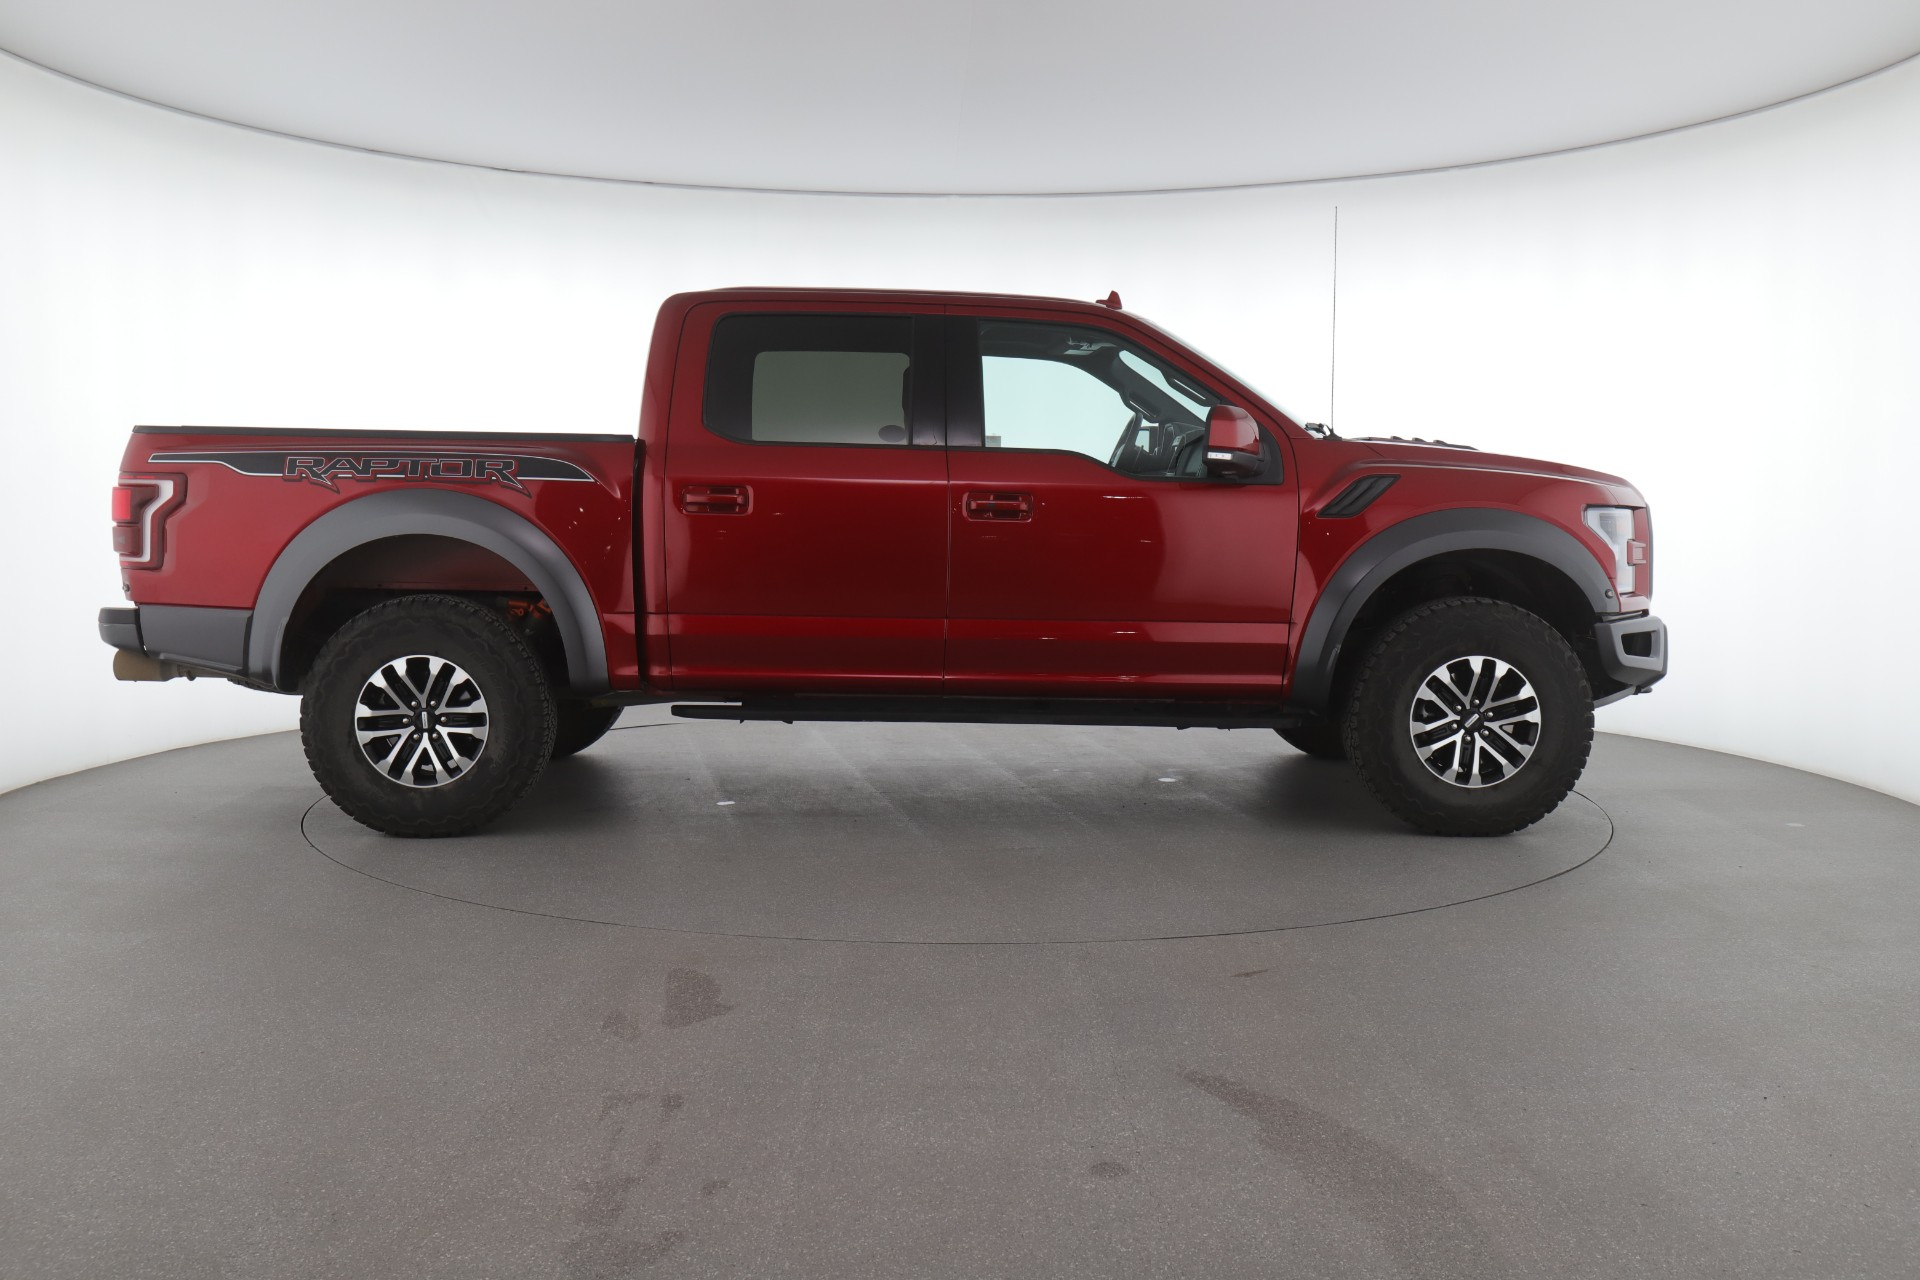 How Much is a Used Ford Raptor? A Complete Guide on Prices and Features